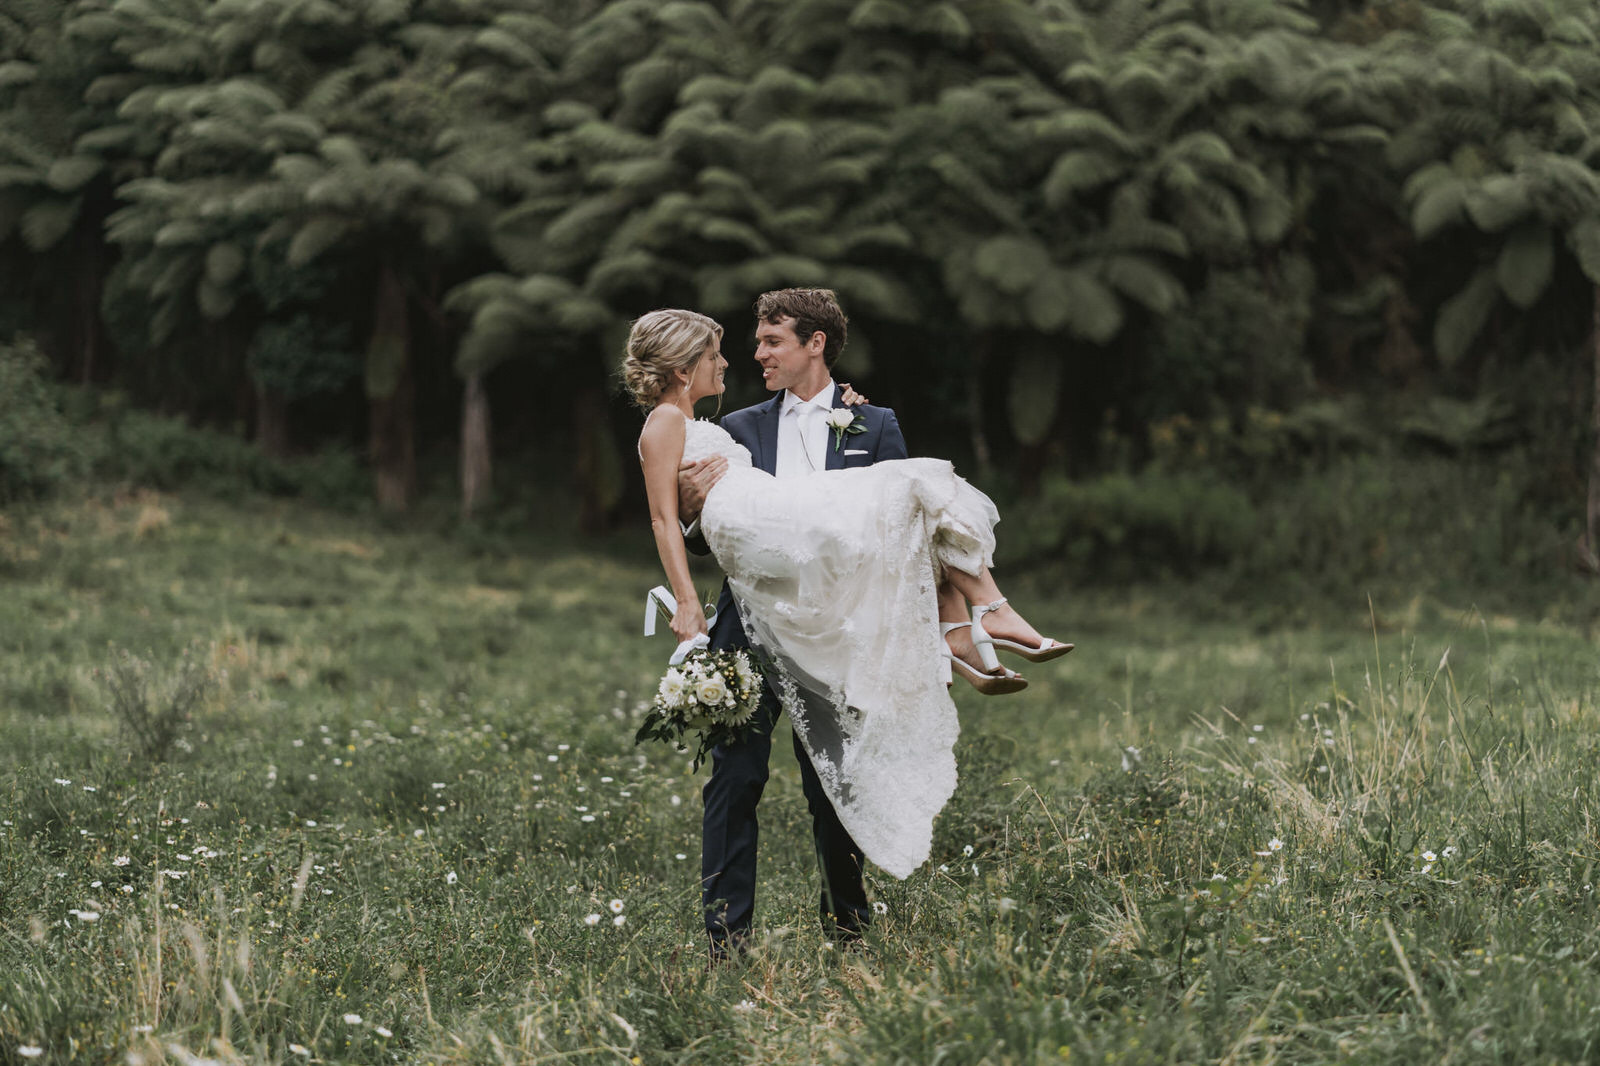 newfound-s-a-ataahua-tauranga-wedding-photography-1553-A9_01463